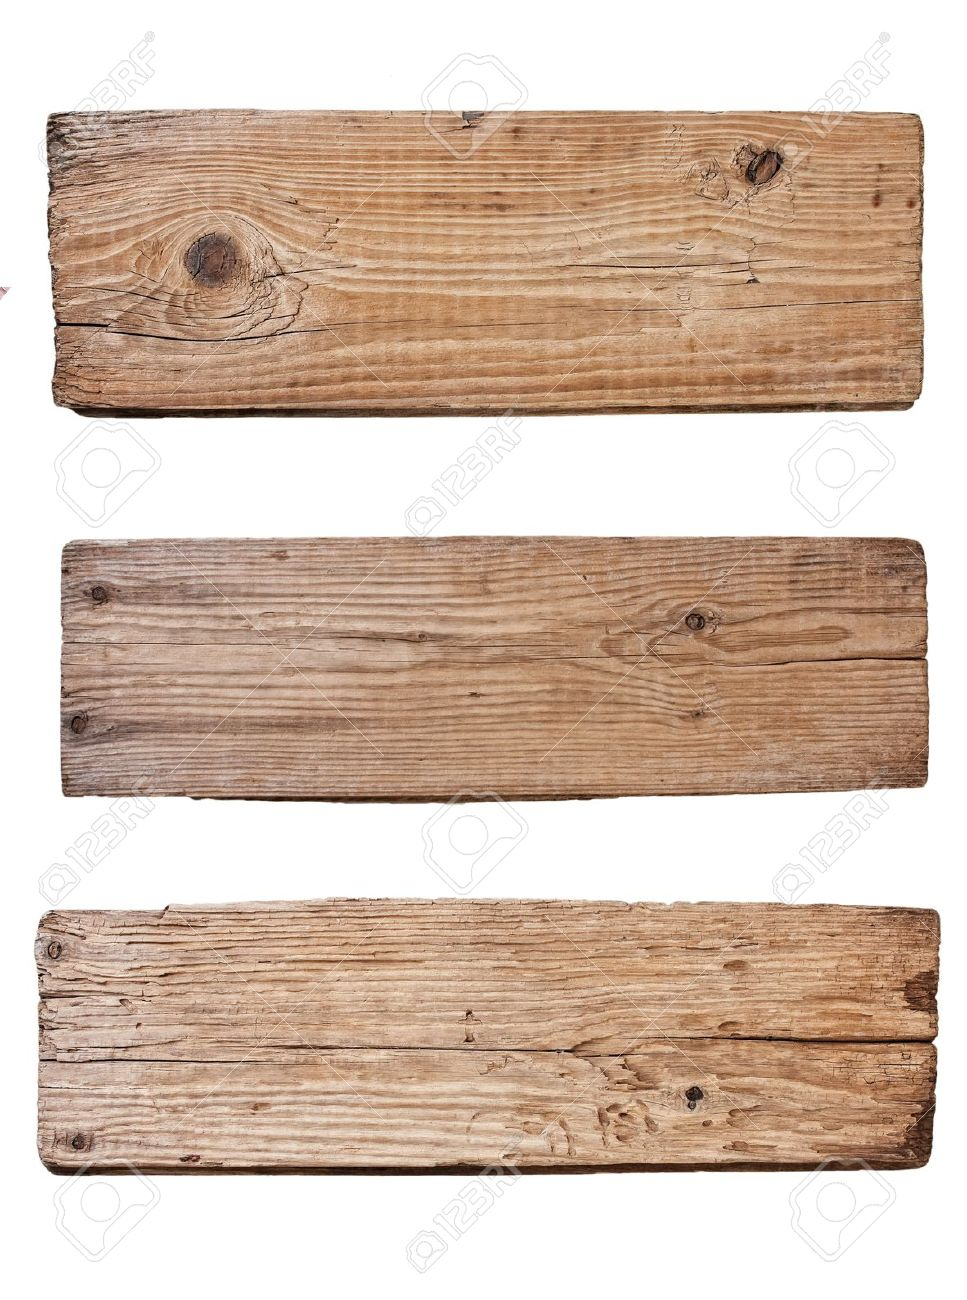 Merveilleux Old Plank Of Wood Isolated On White Background Stock Photo   9829739